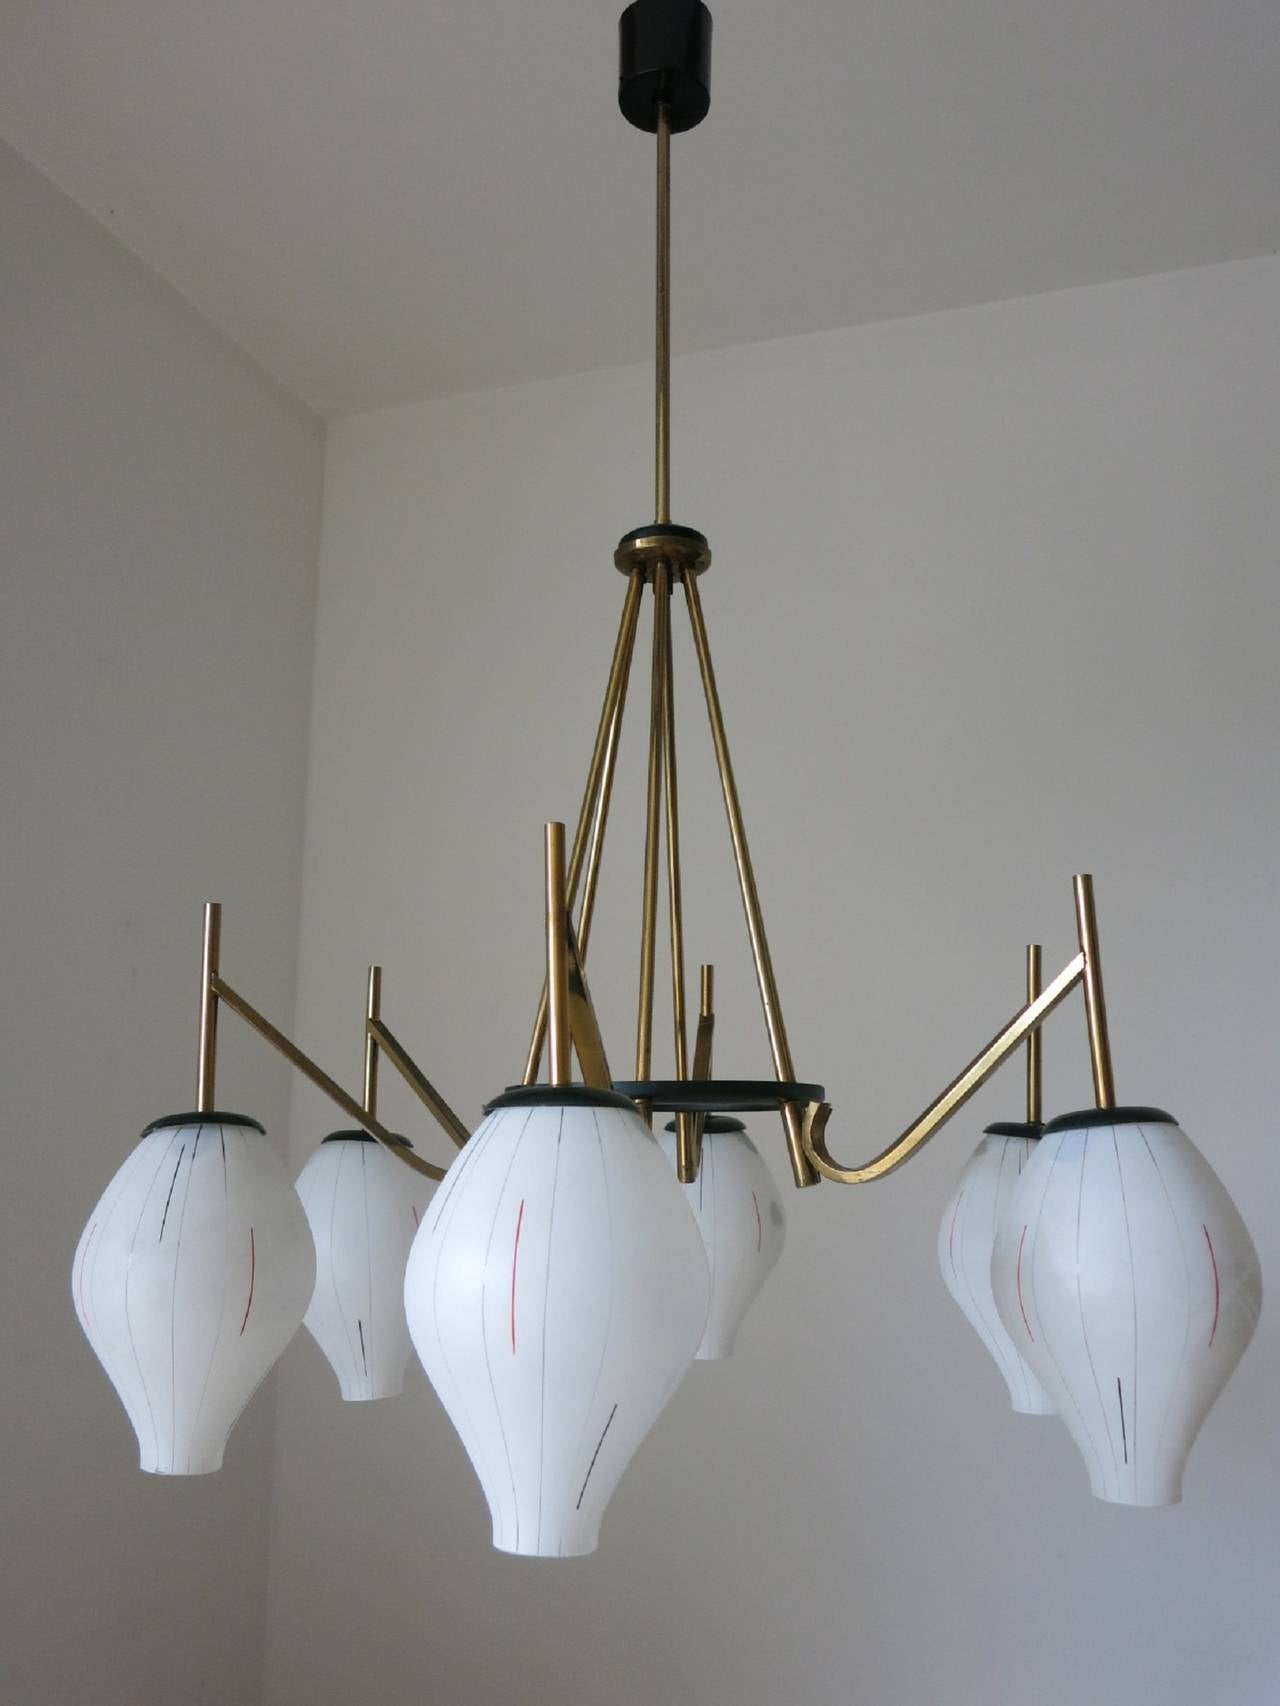 Charming White Glass Shades Chandelier In The Style Of Stilnovo At 1stdibs